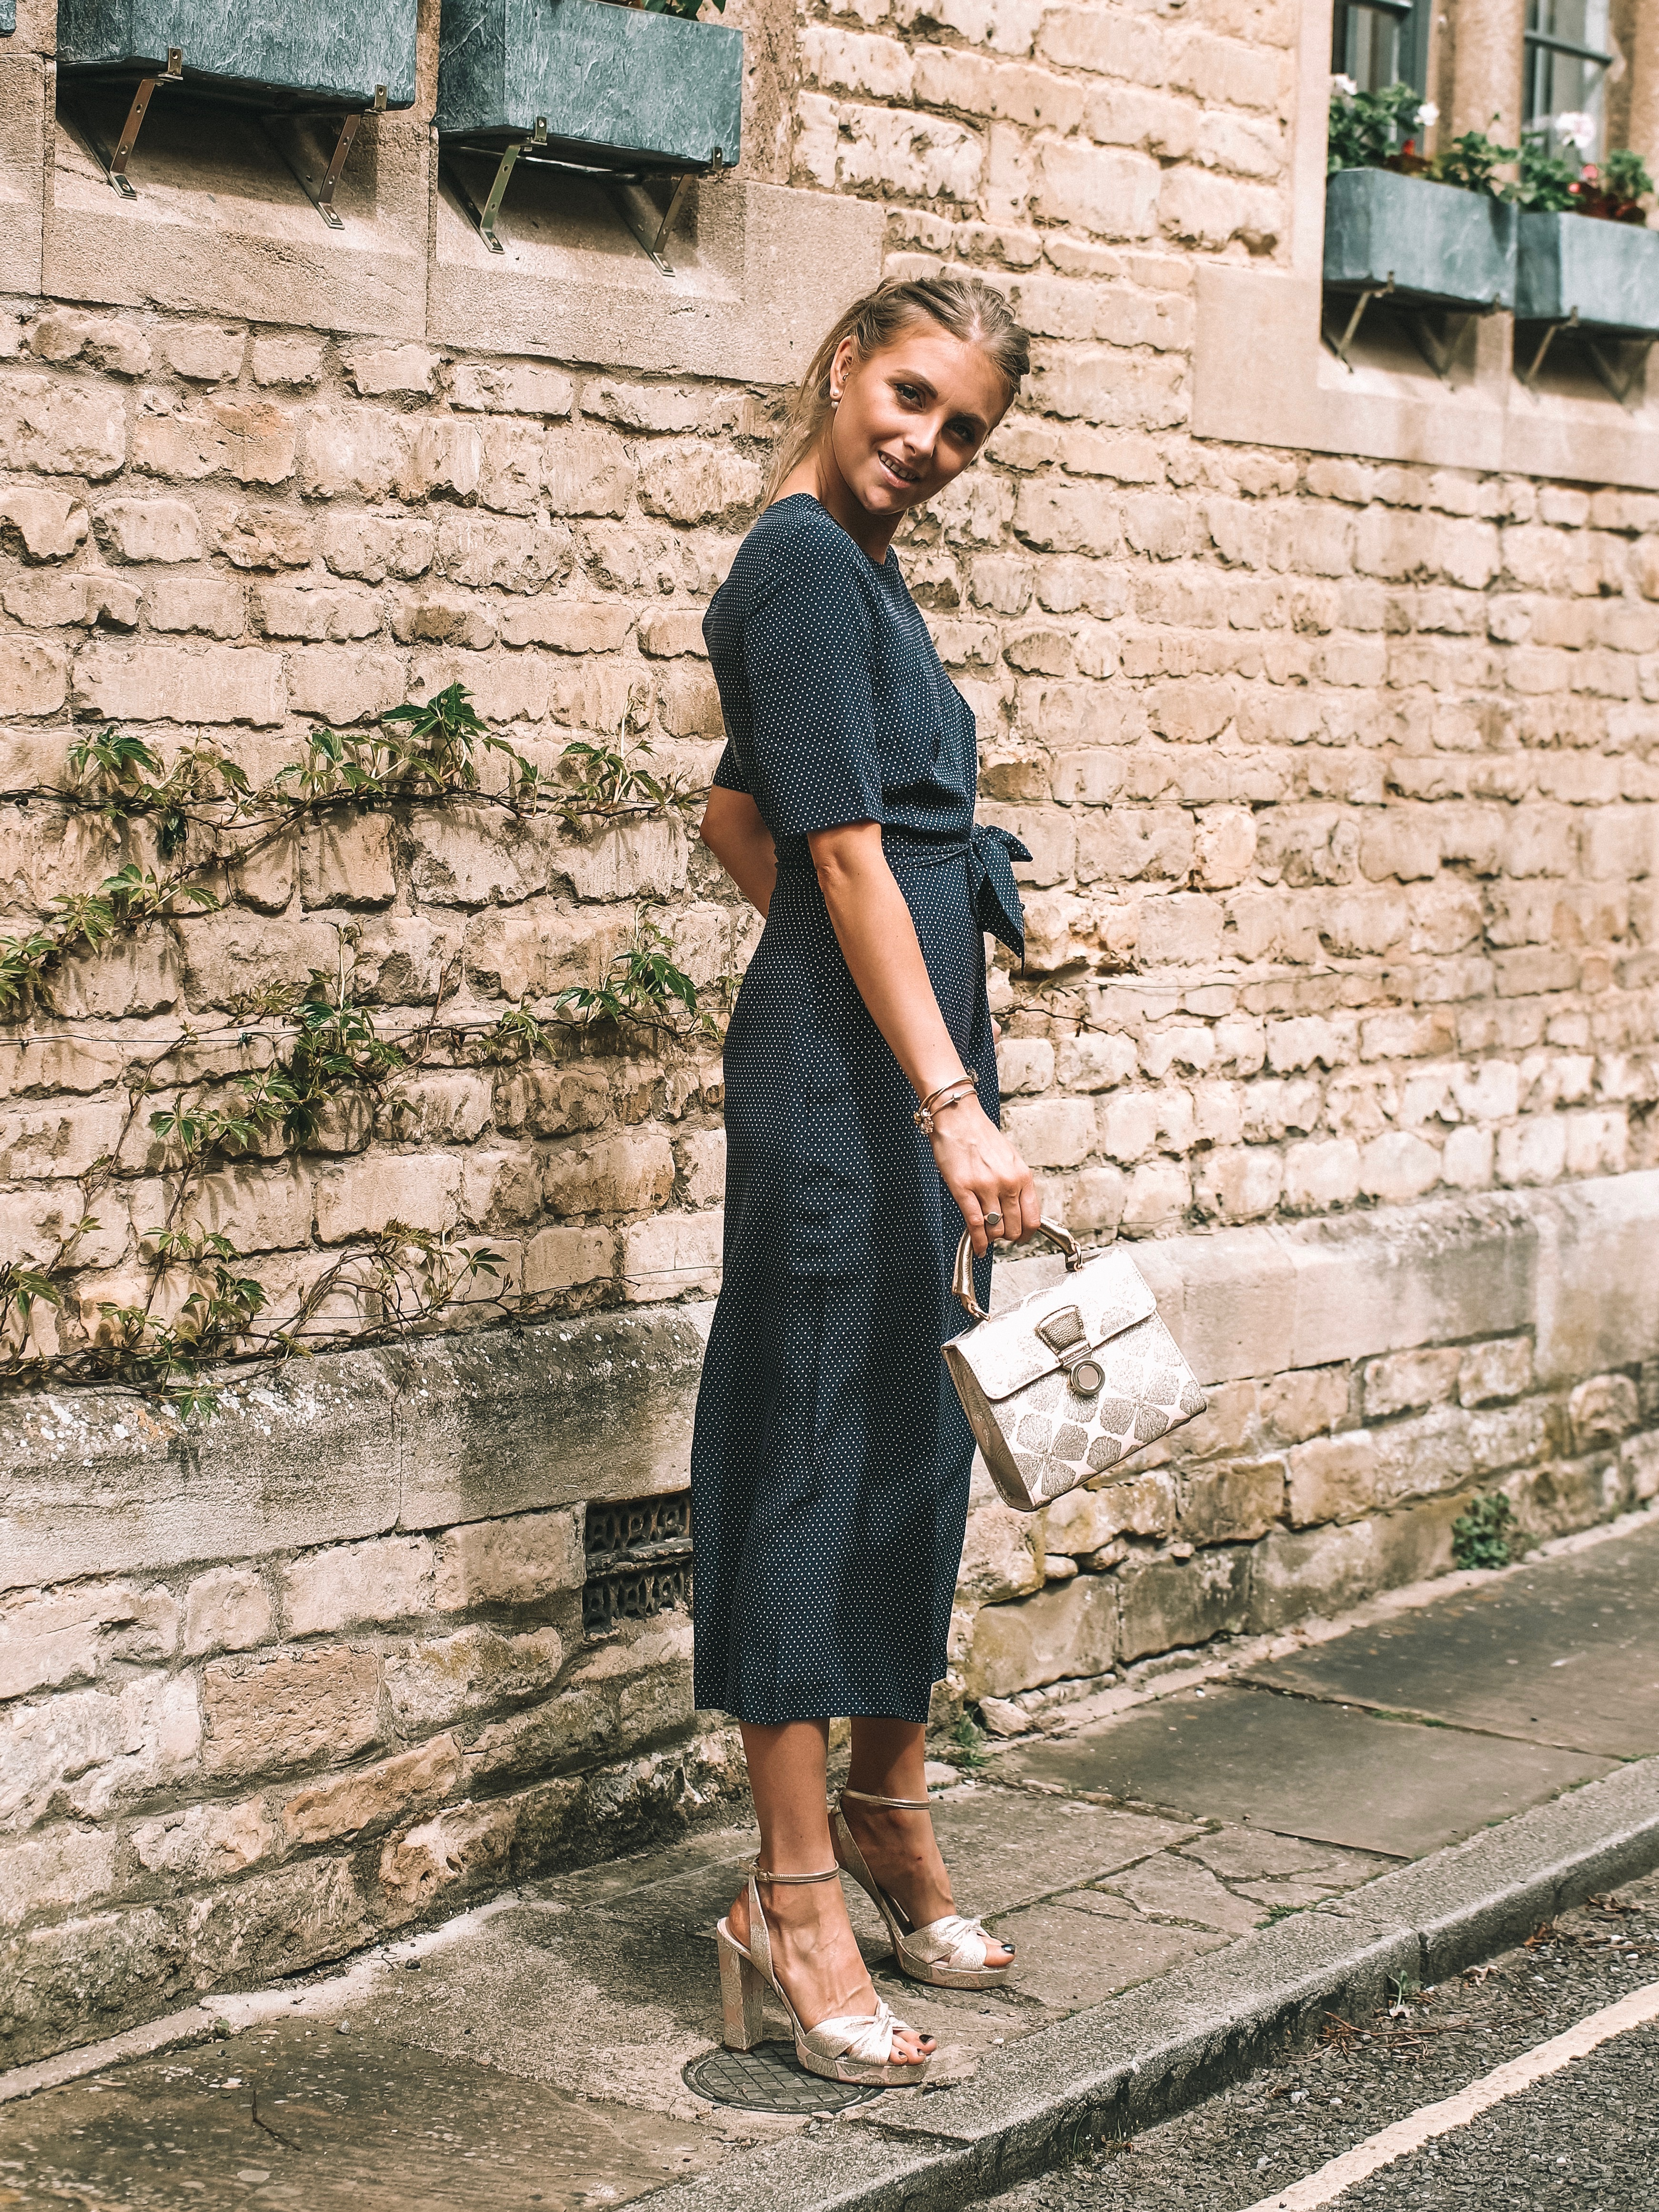 Wedding Guest Outfit.Lk Bennett Jumpsuit The Perfect Summer Wedding Guest Outfit Love